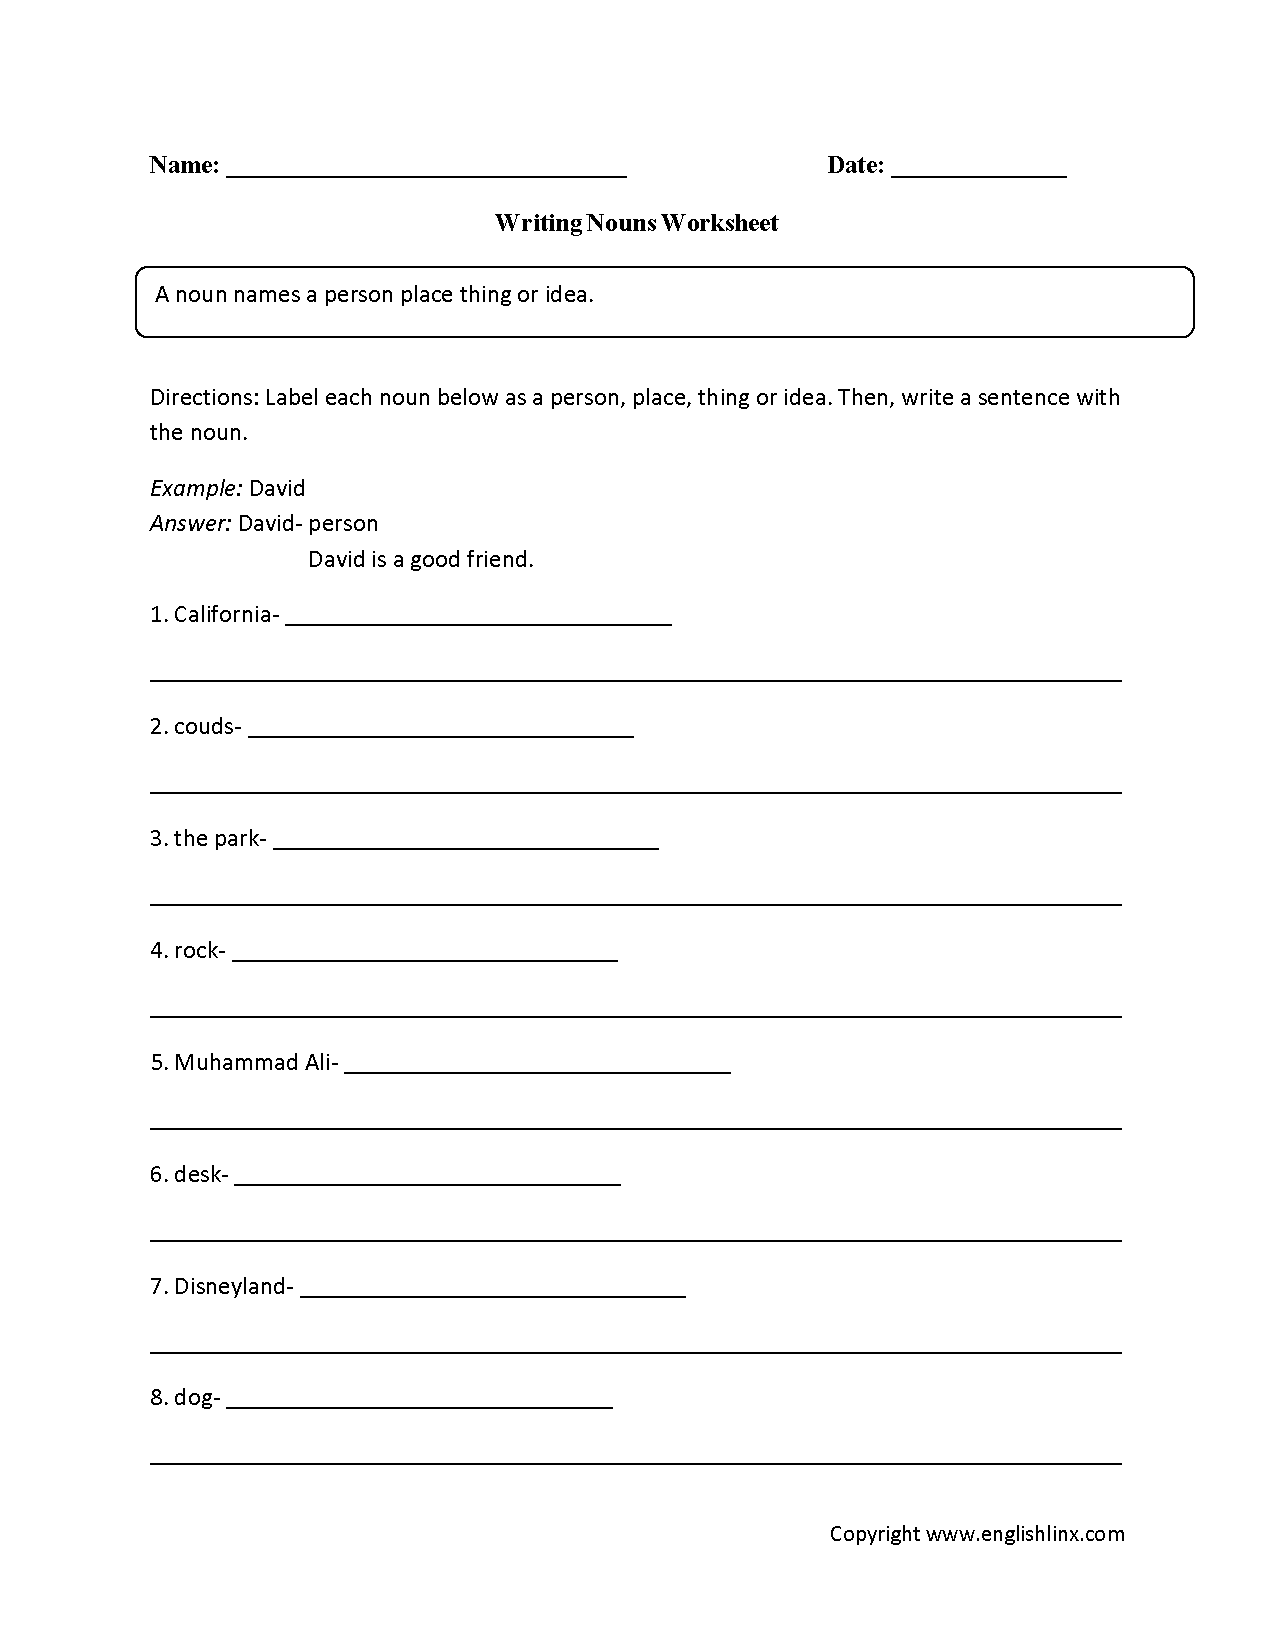 Writing With Nouns Worksheet